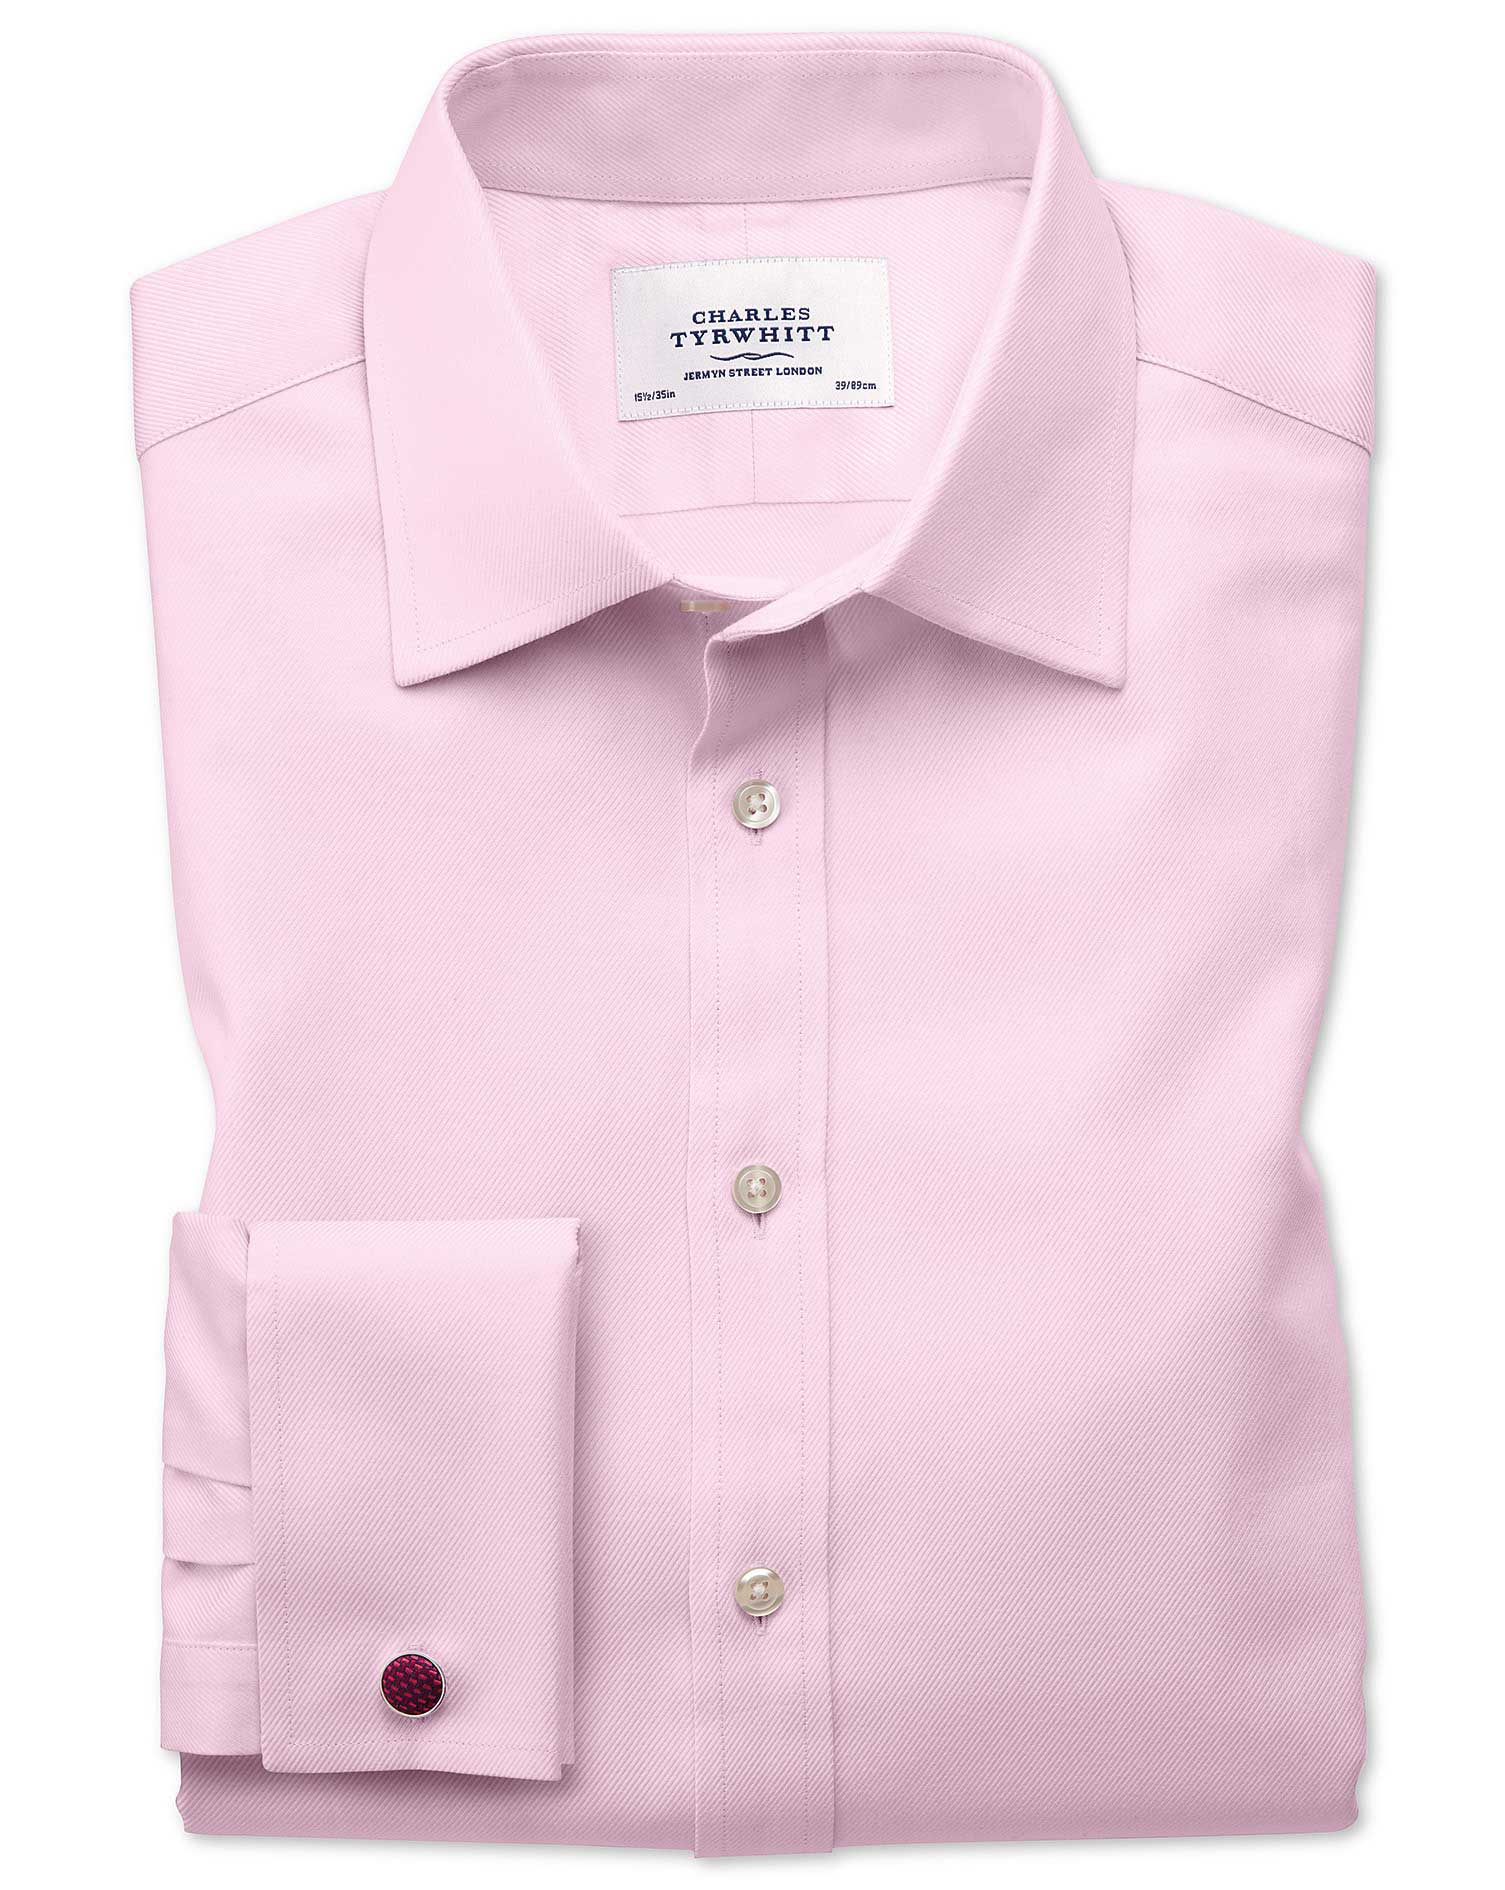 Extra Slim Fit Egyptian Cotton Cavalry Twill Light Pink Formal Shirt Double Cuff Size 15.5/32 by Cha